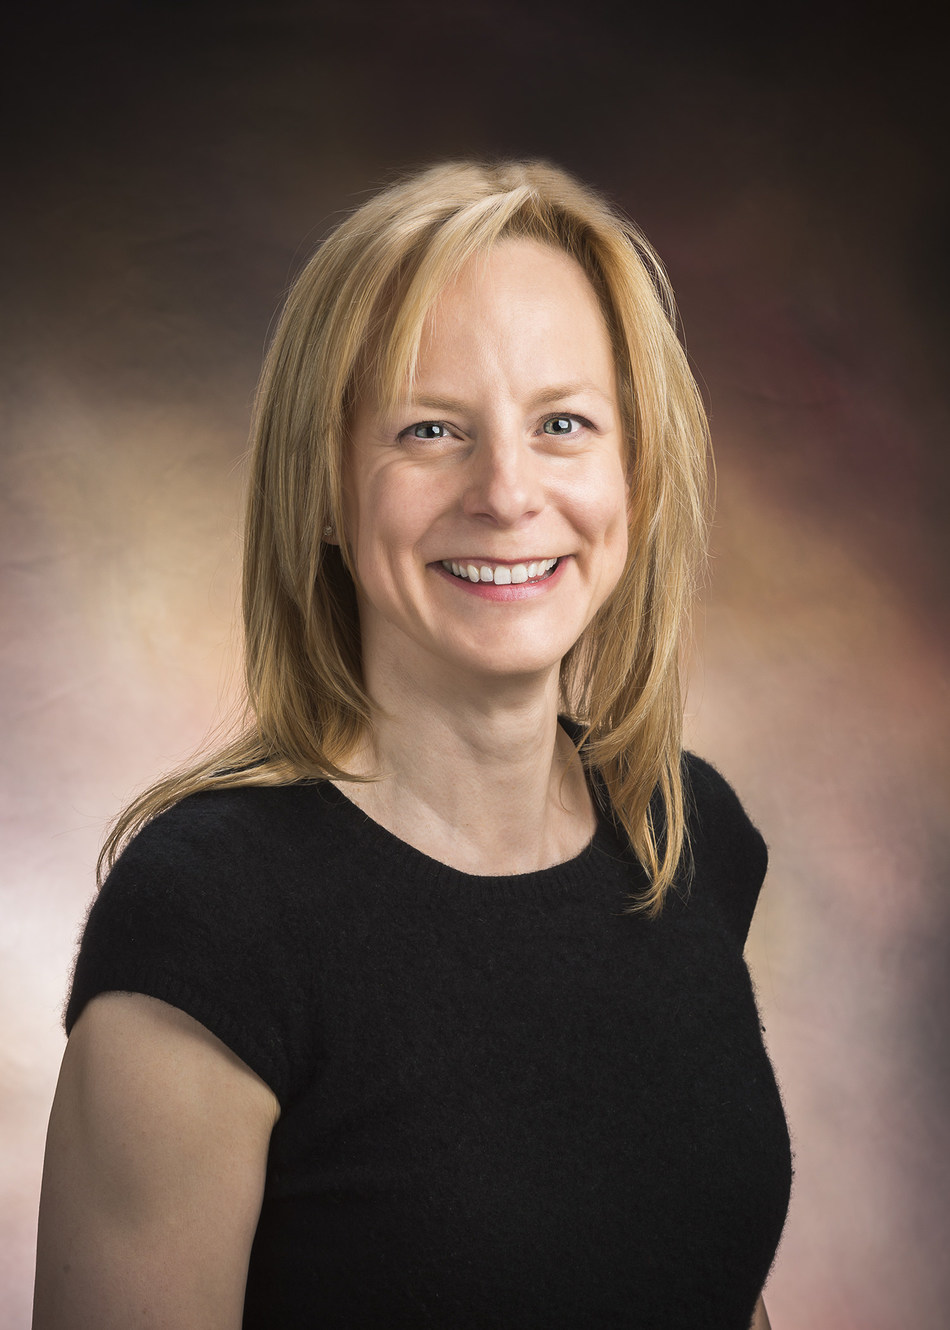 Katherine Dahlsgaard, PhD, ABPP, is Clinical Director of the Anxiety Behaviors Clinic in the Department of Child and Adolescent Psychiatry and Behavioral Science Children's Hospital of Philadelphia.